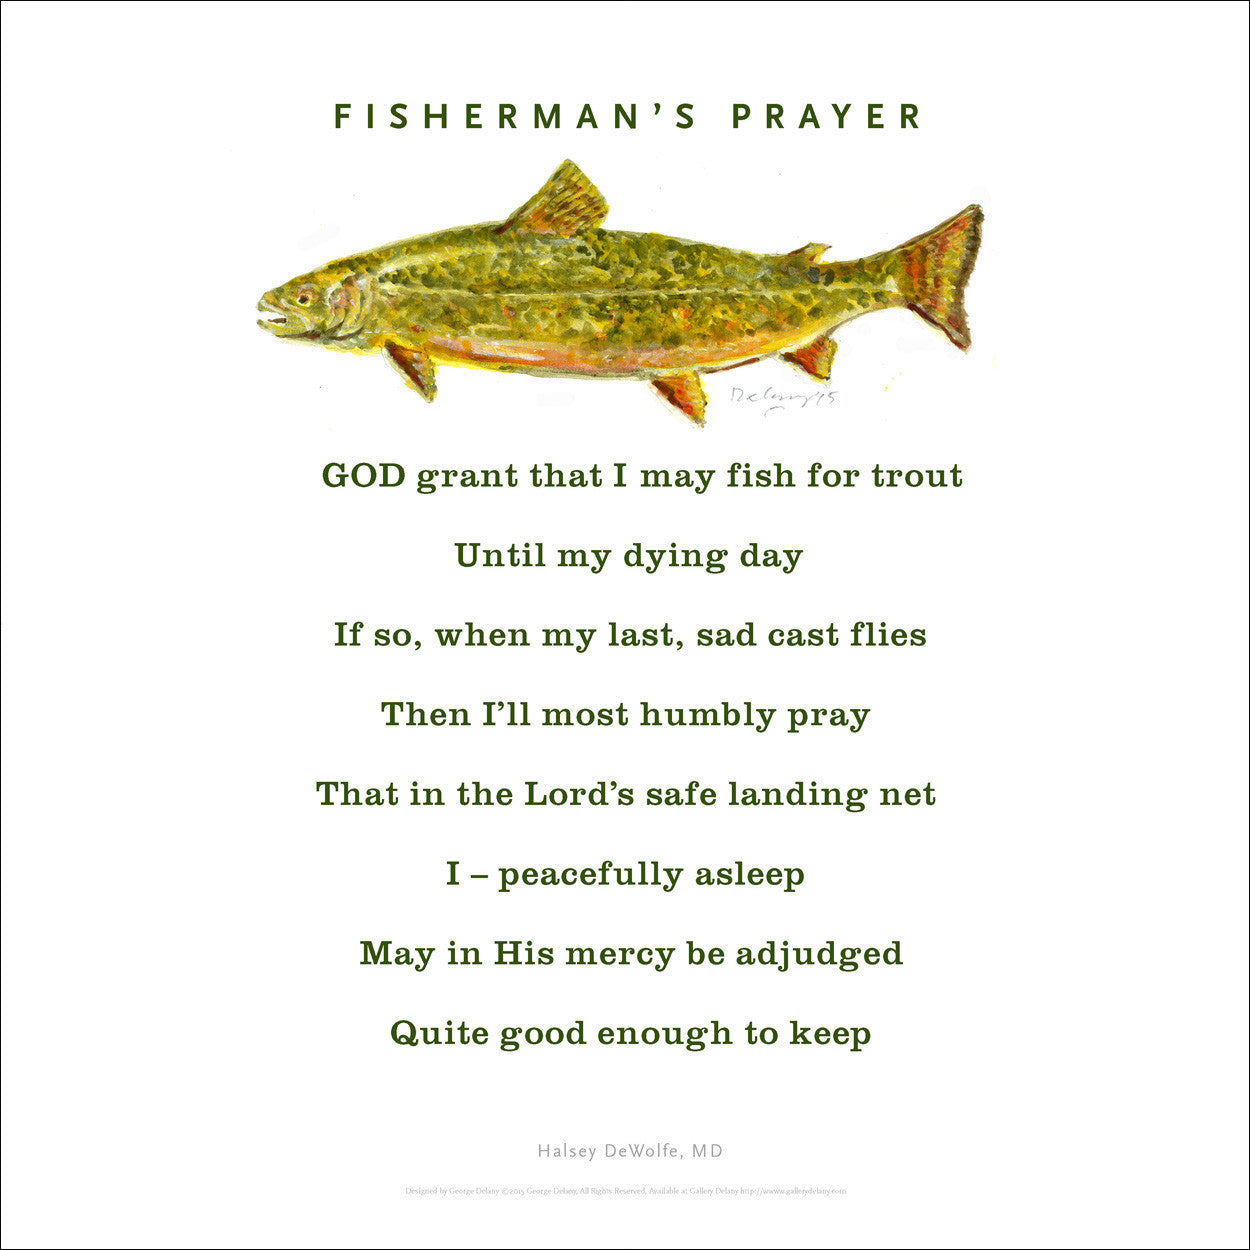 Fisherman's Prayer, Wall Art 666